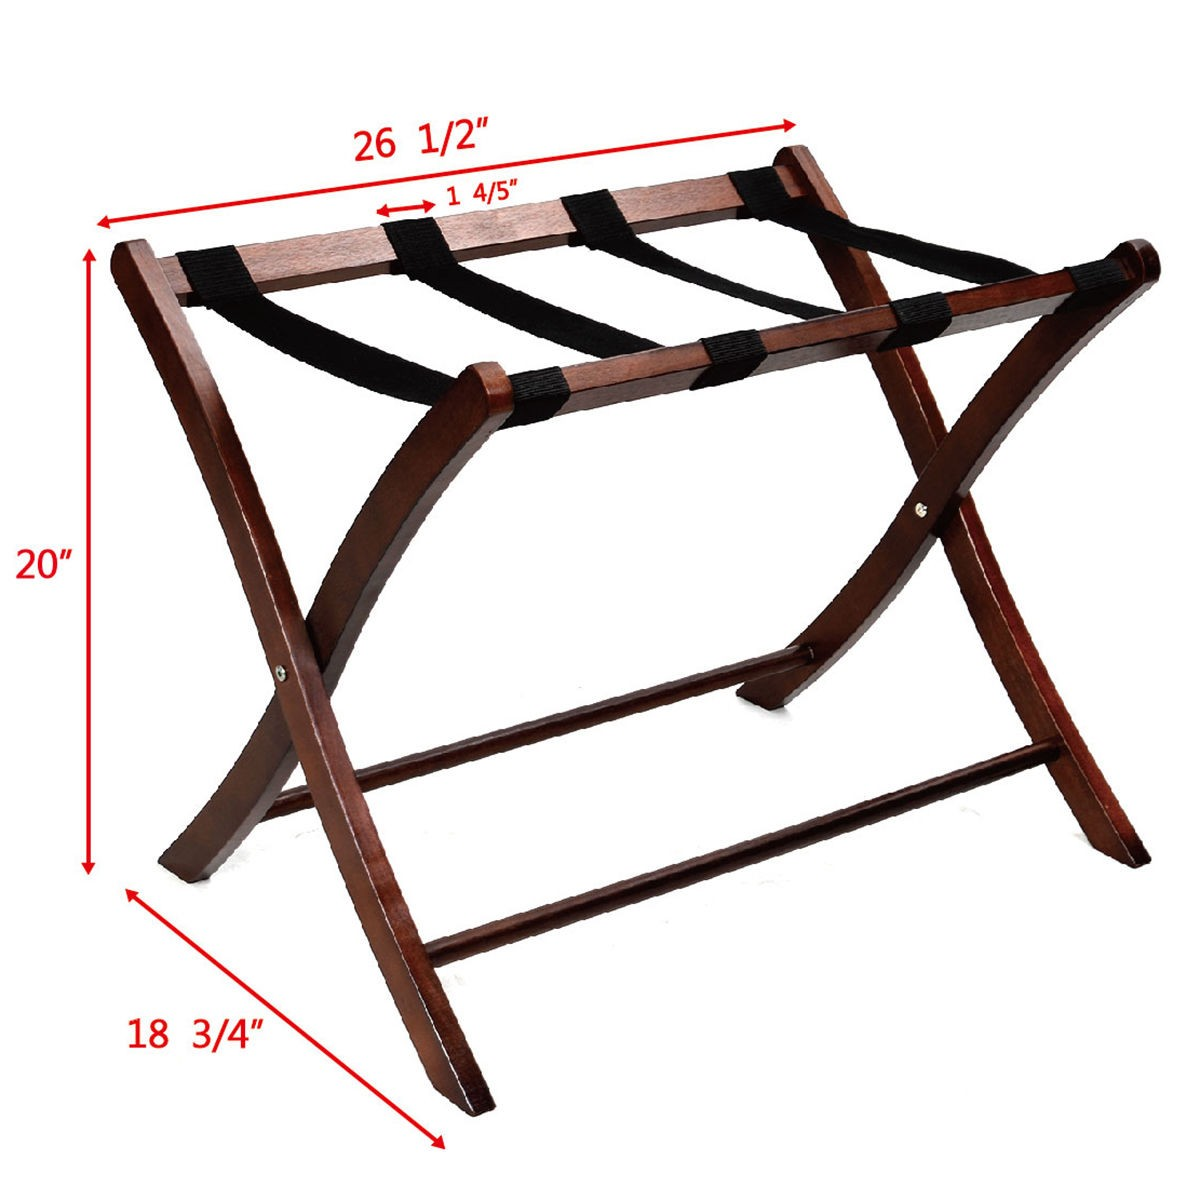 Apontus Great Quality Wood Luggage Rack, Walnut | eBay